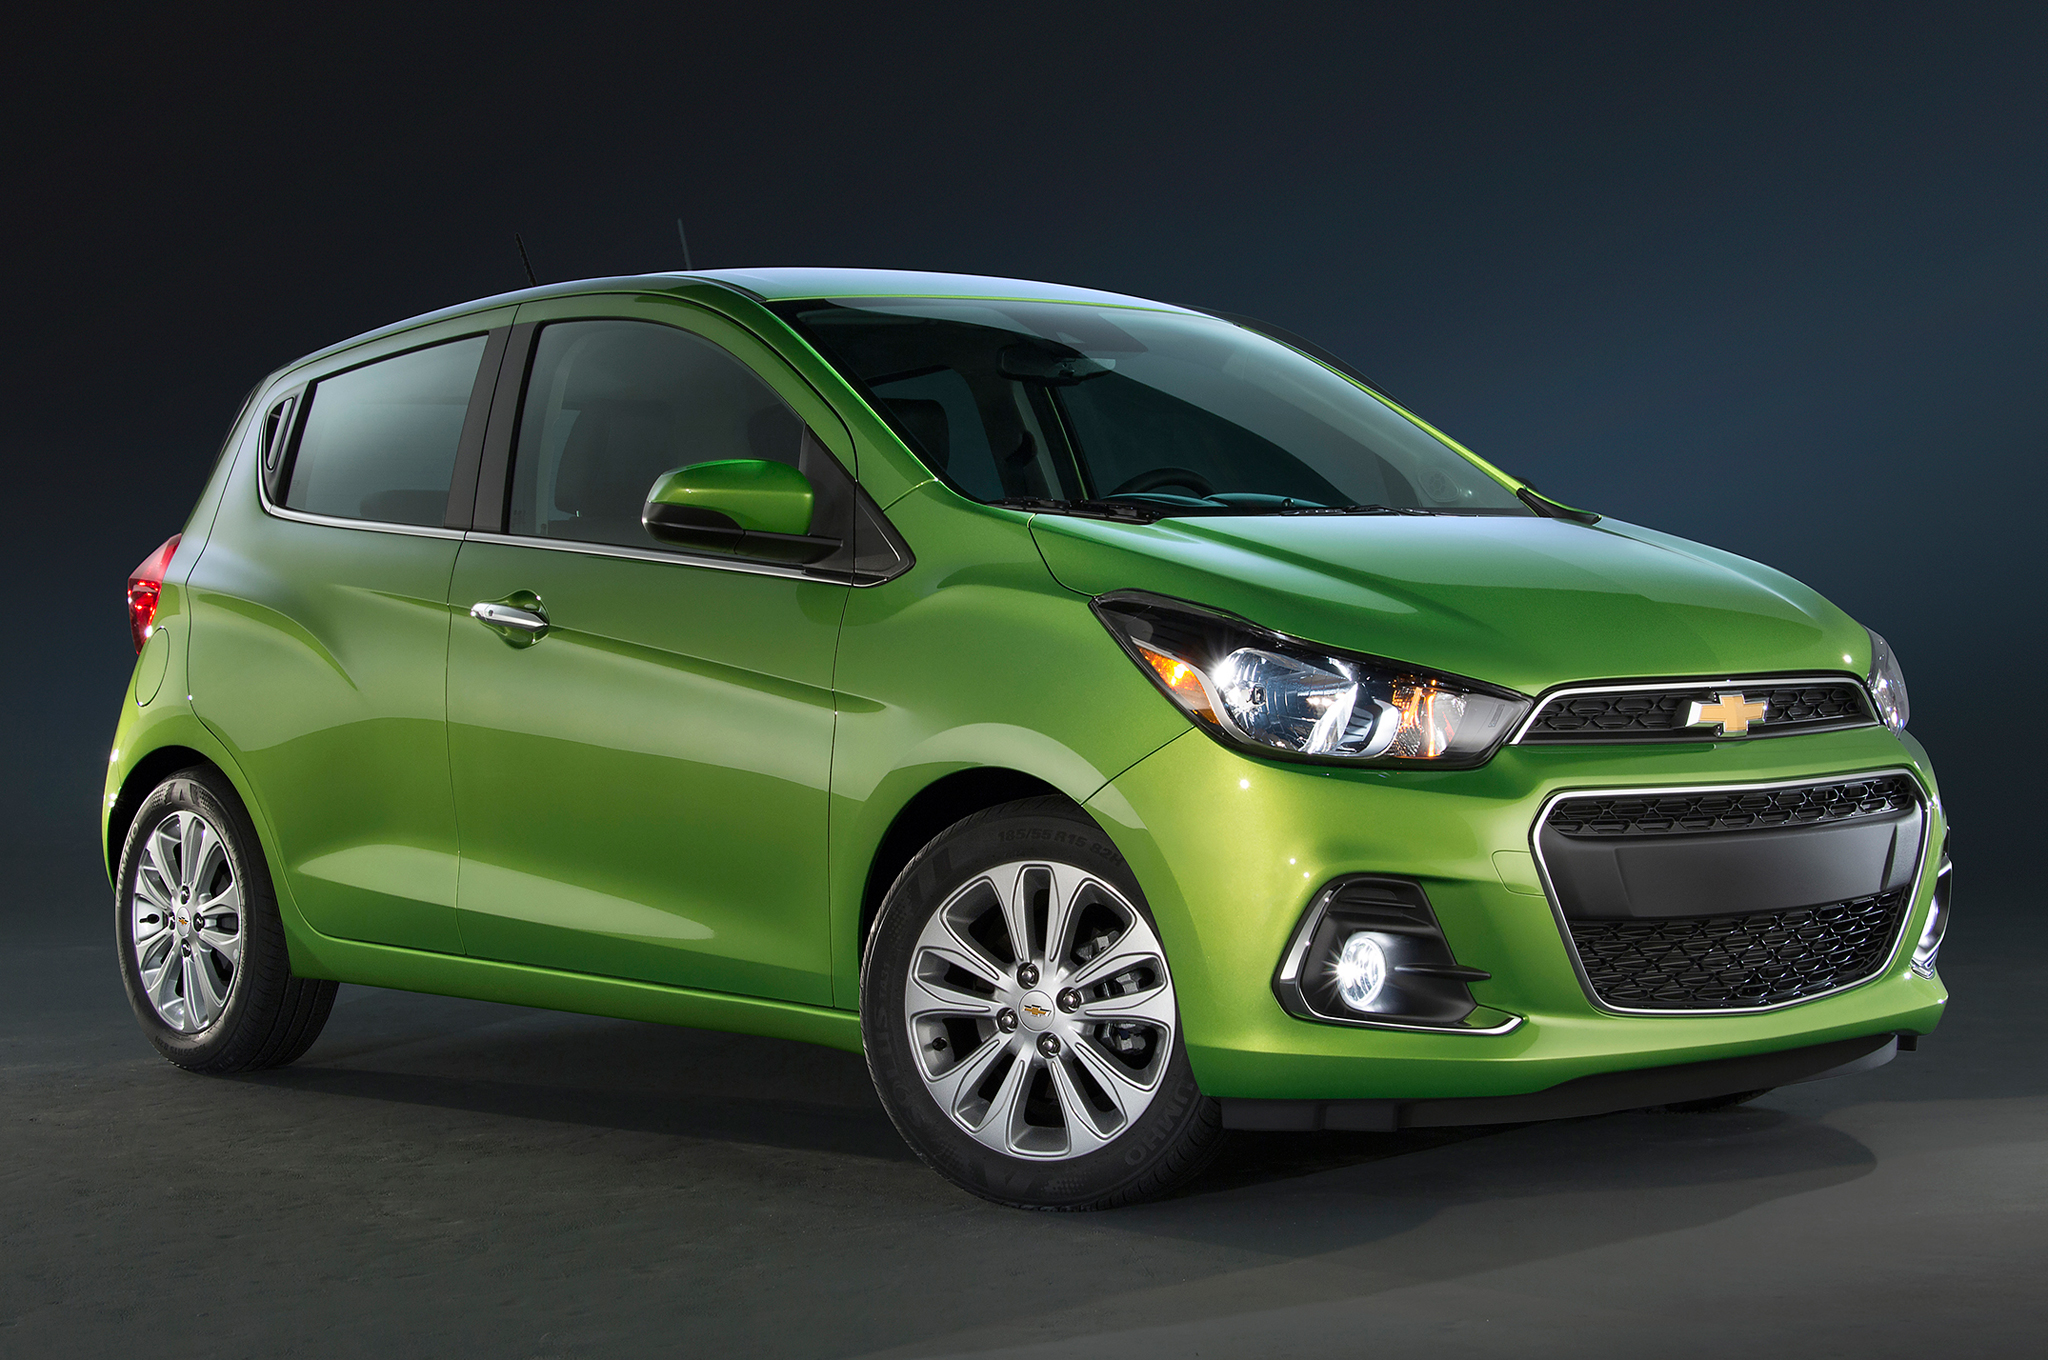 Chevrolet to Invest $5B in New Small Car Family for Emerging Markets